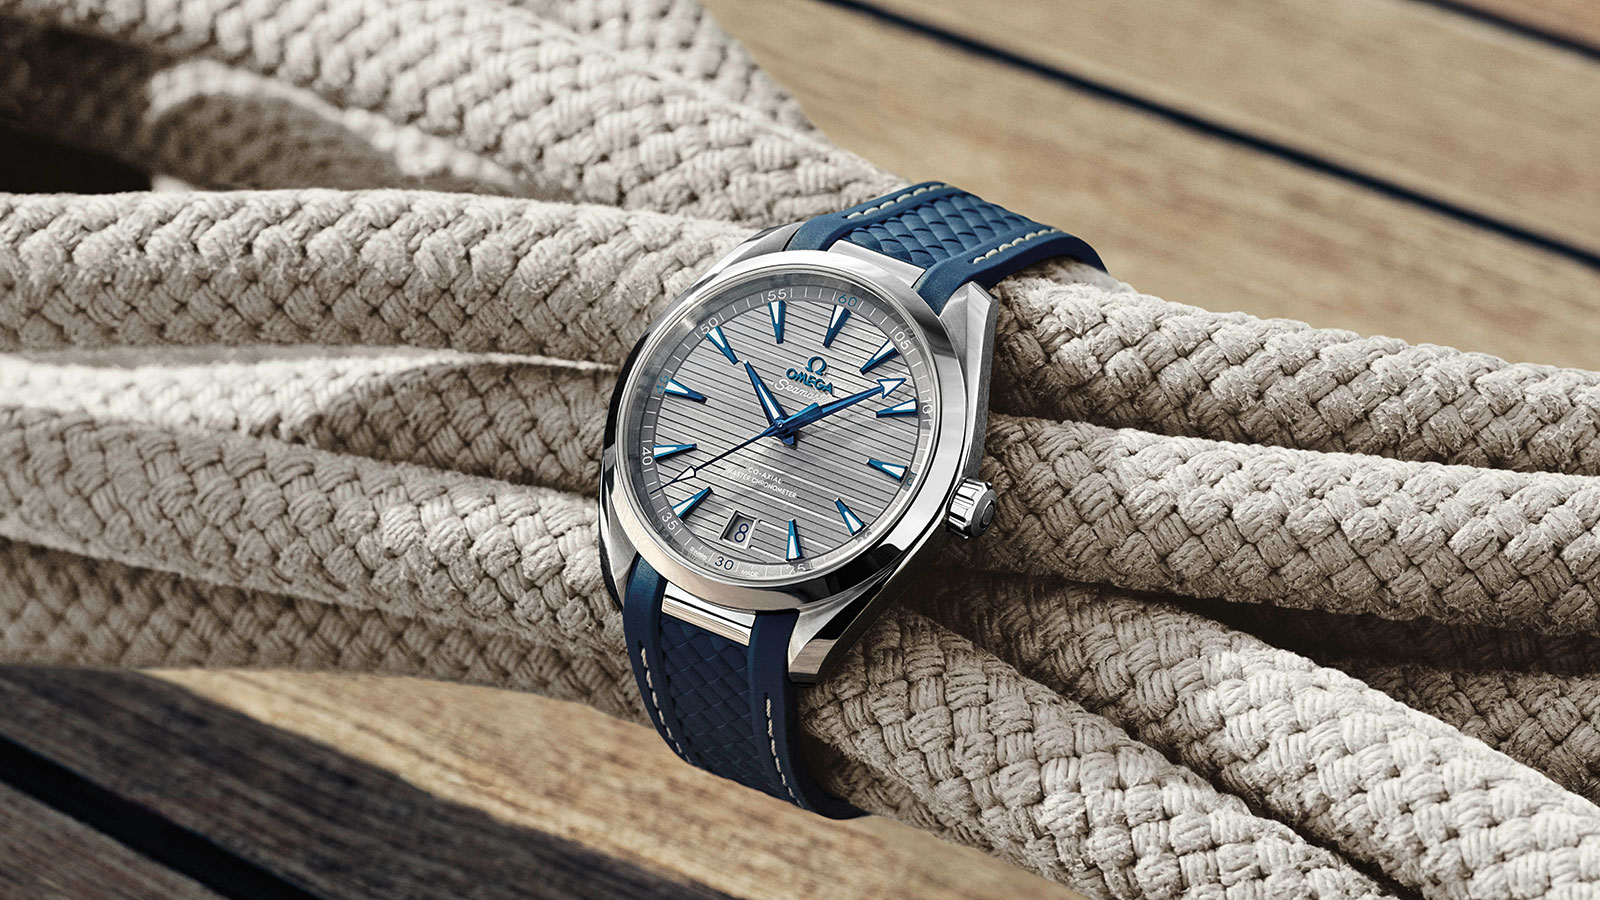 Seamaster アクアテラ 150M Aqua Terra 150M Omega Co‑Axial Master Chronometer 41 mm ウォッチ - 220.12.41.21.06.001